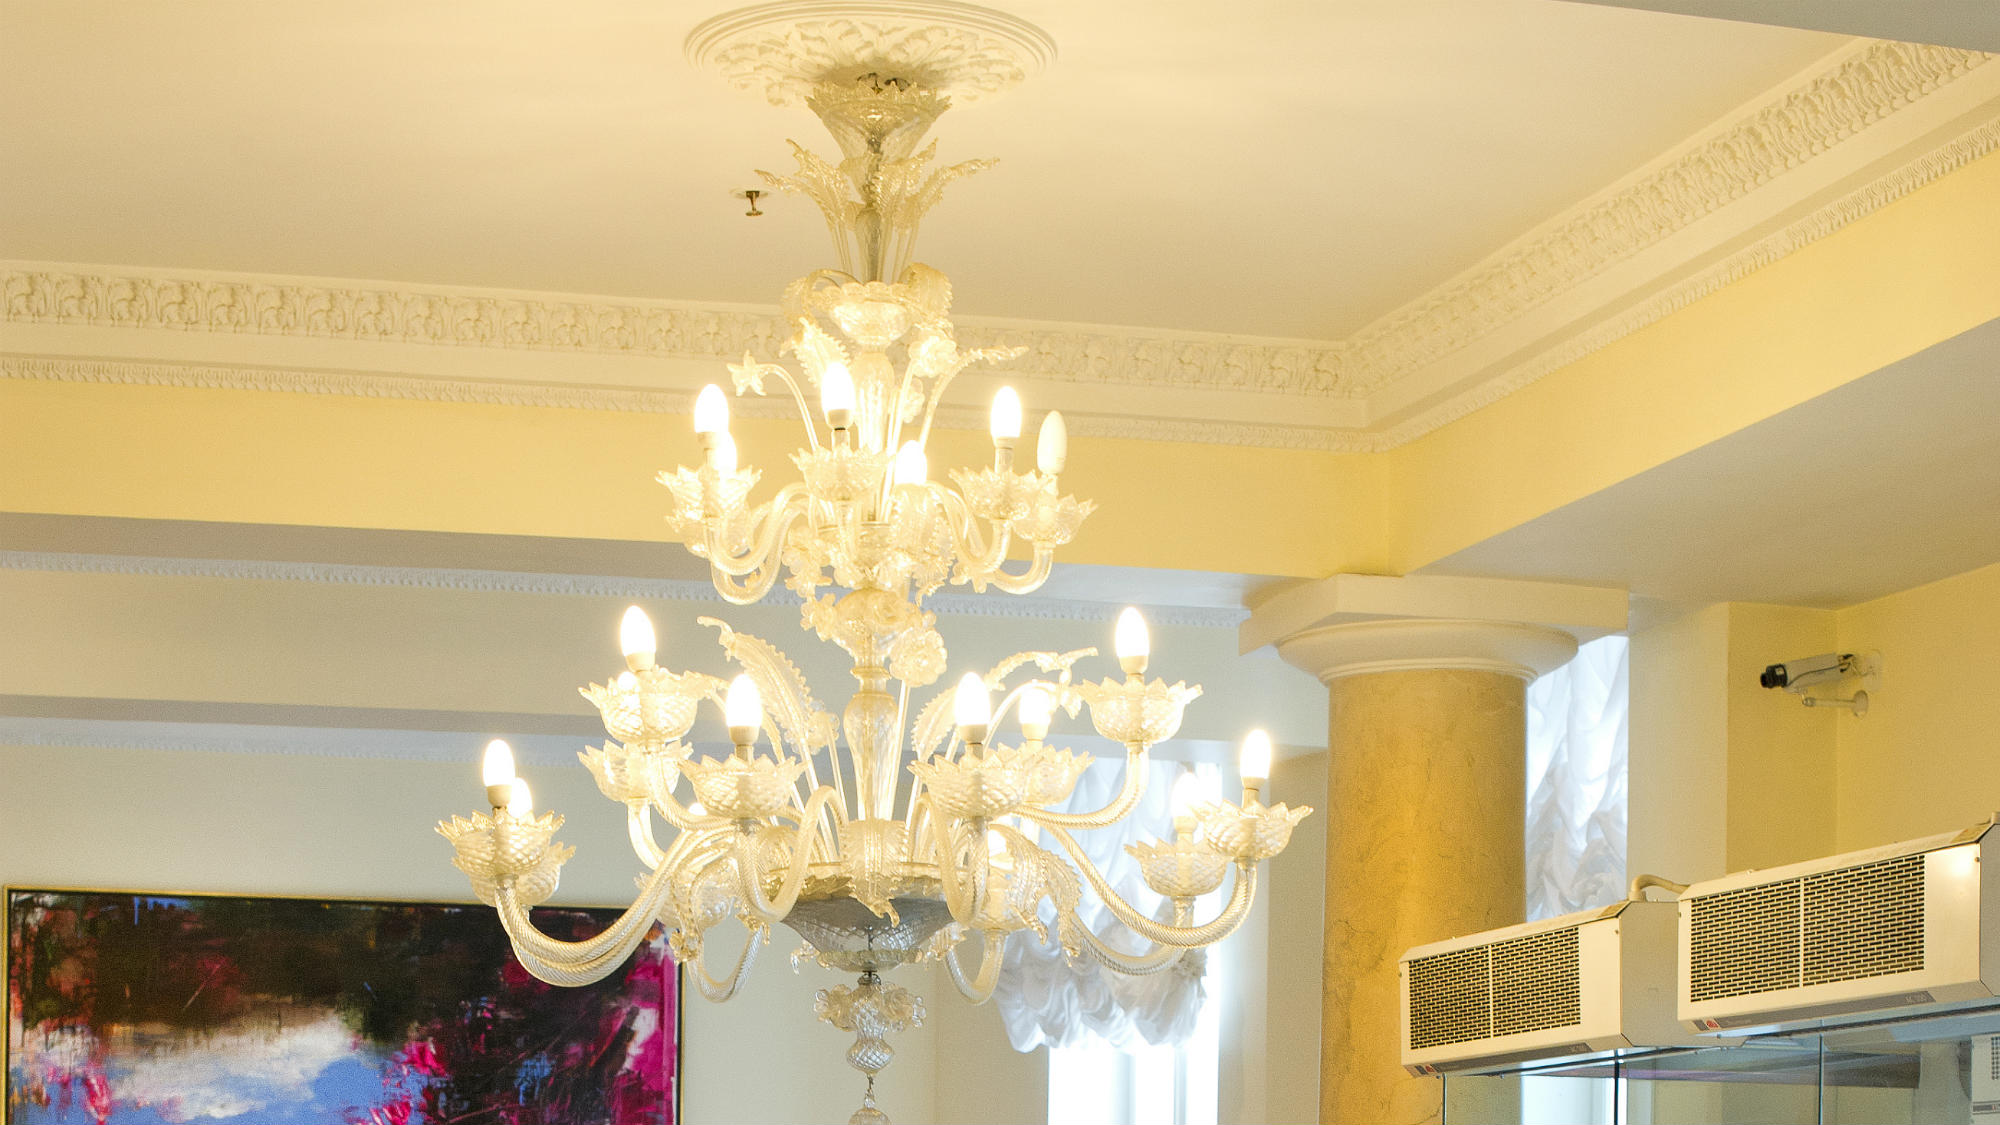 Chandelier at the foyer